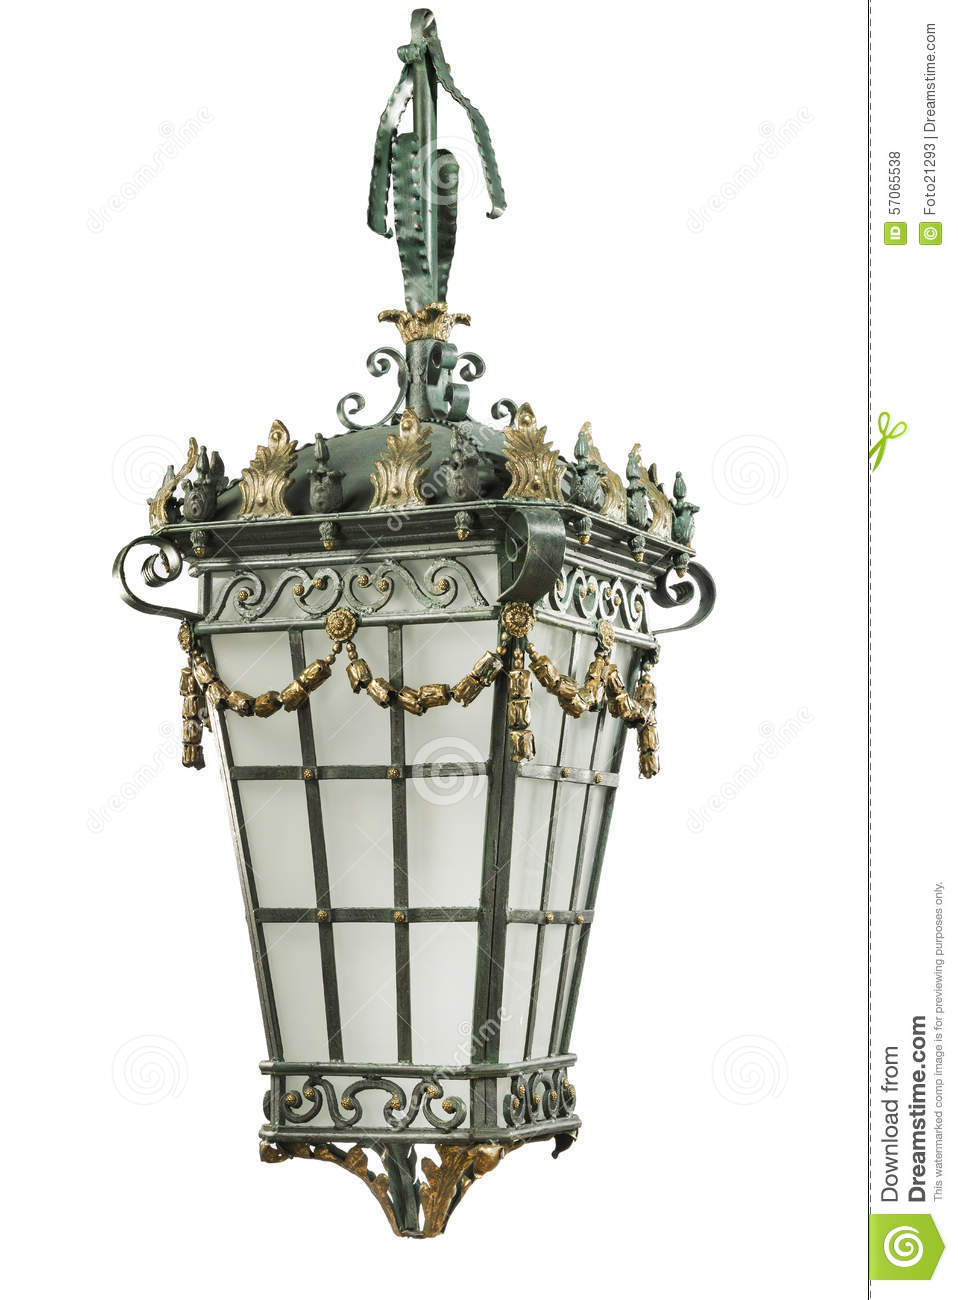 Electric Hanging Antique Lantern Outdoors Street Lamp Stock Photo Image Of Outdoor Retro 57065538